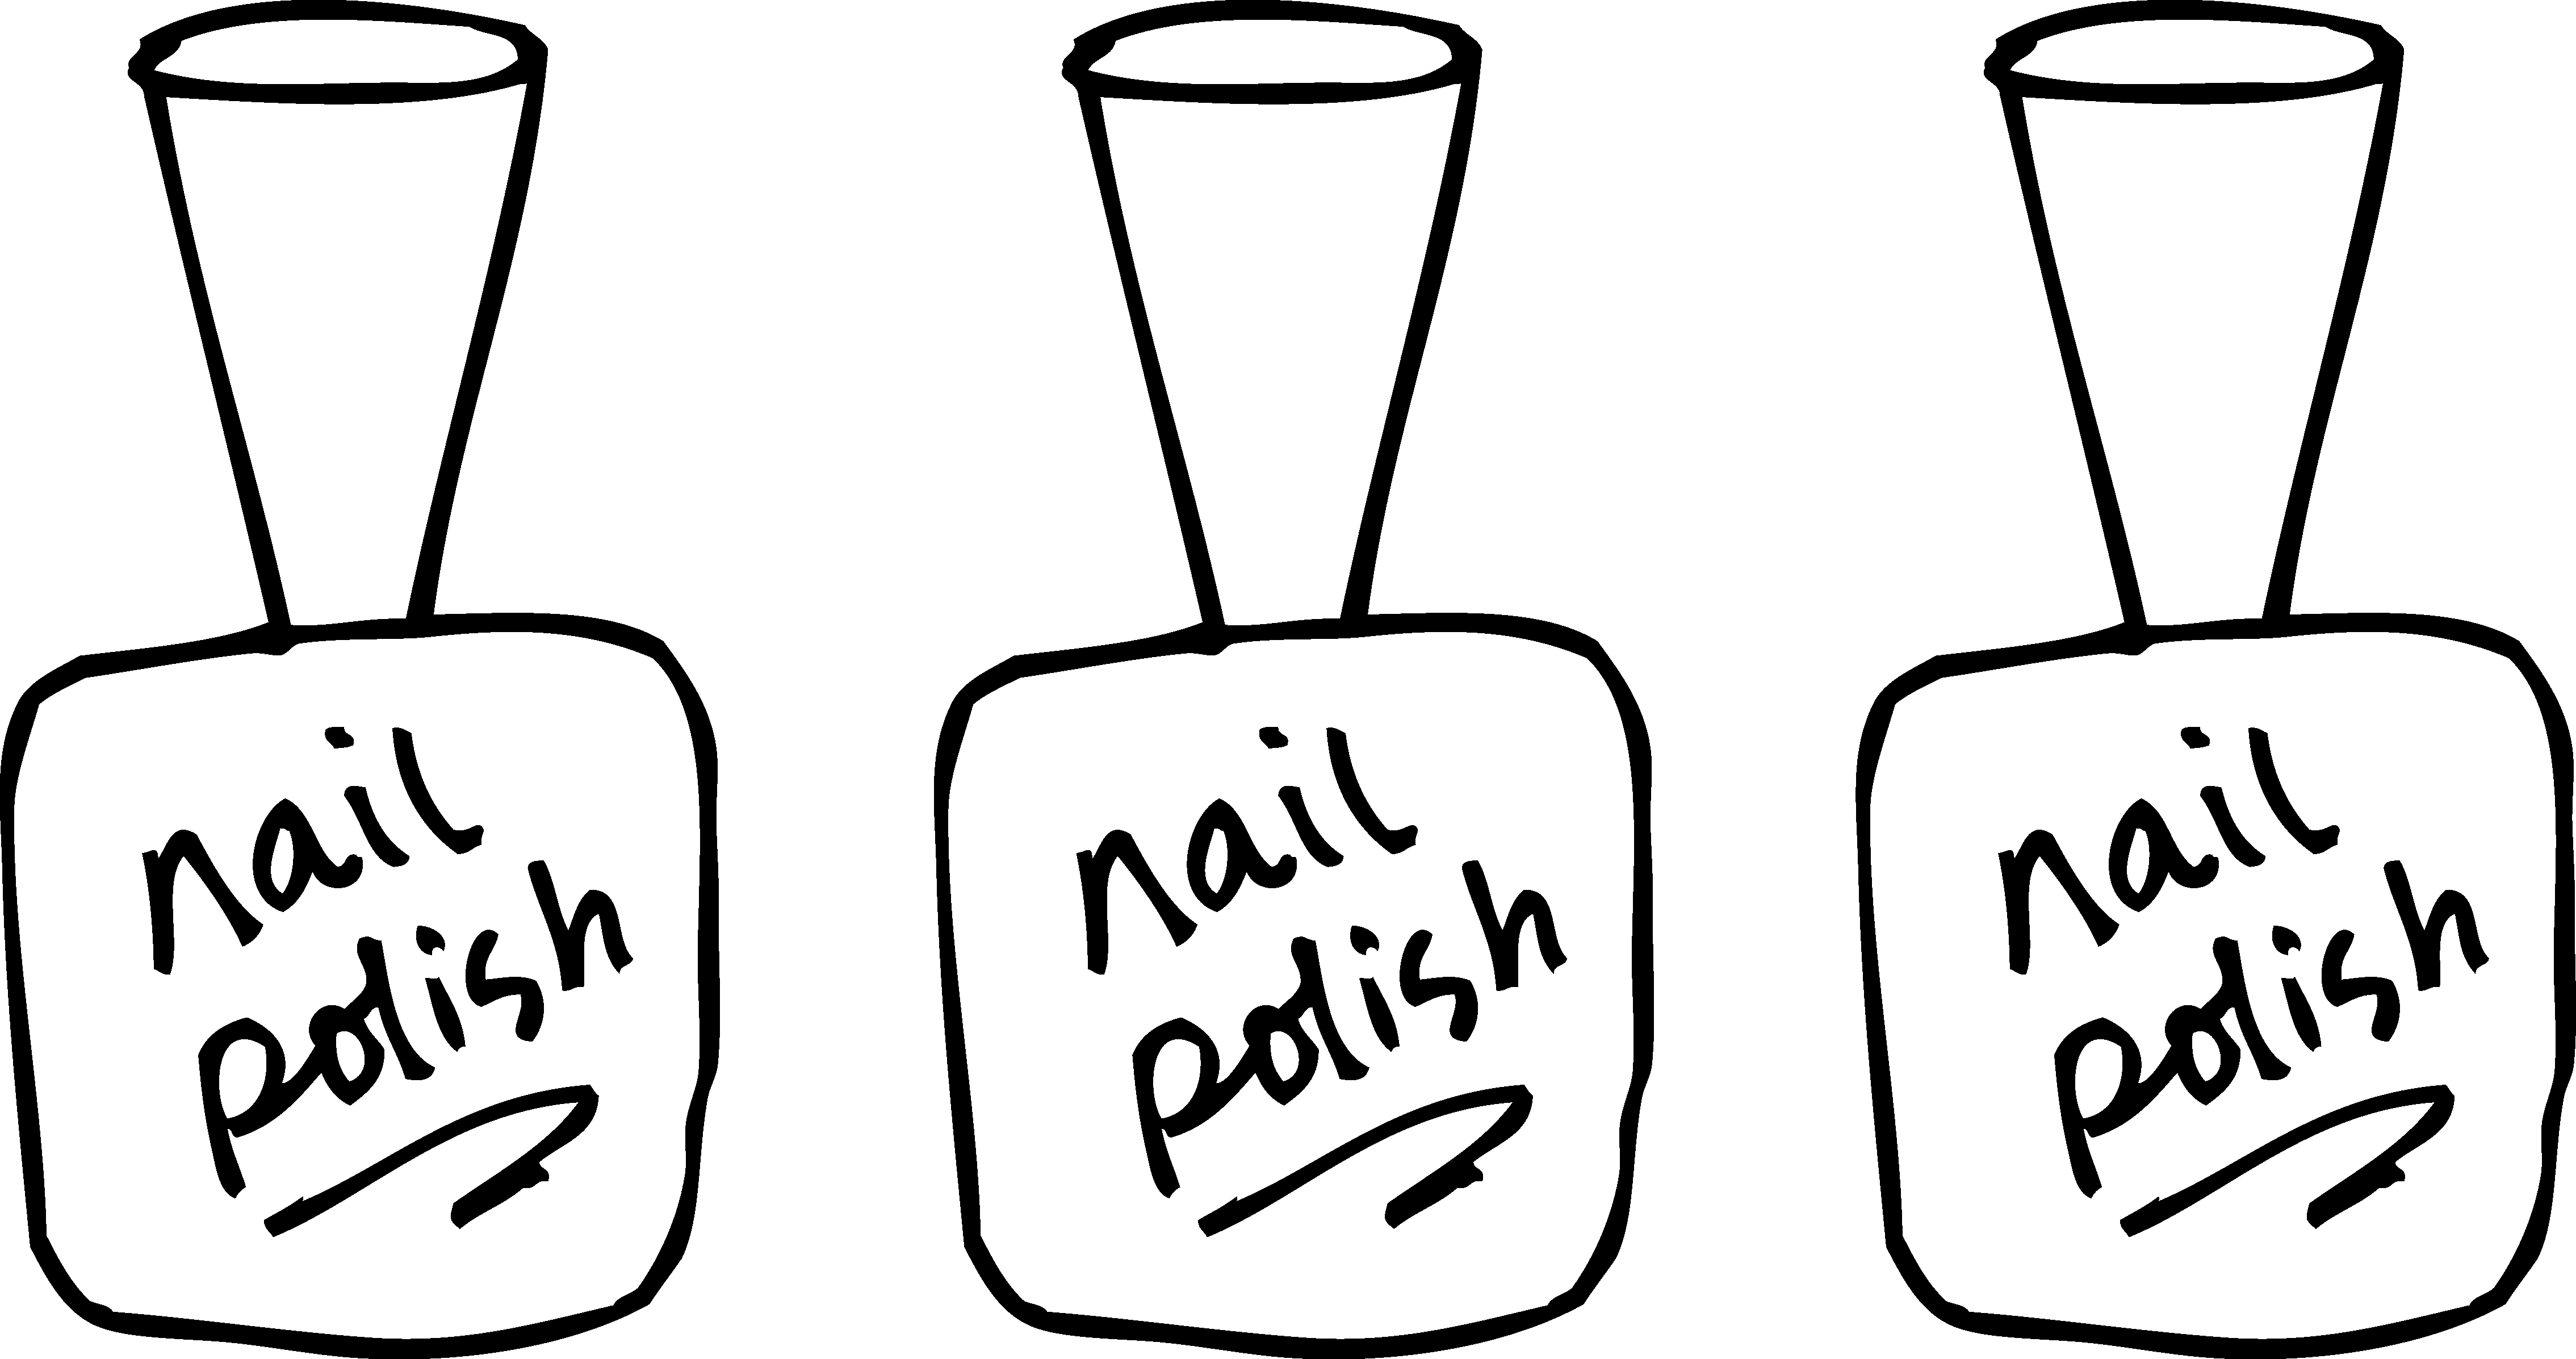 Images For > Nail Salon Clipart Black And White.